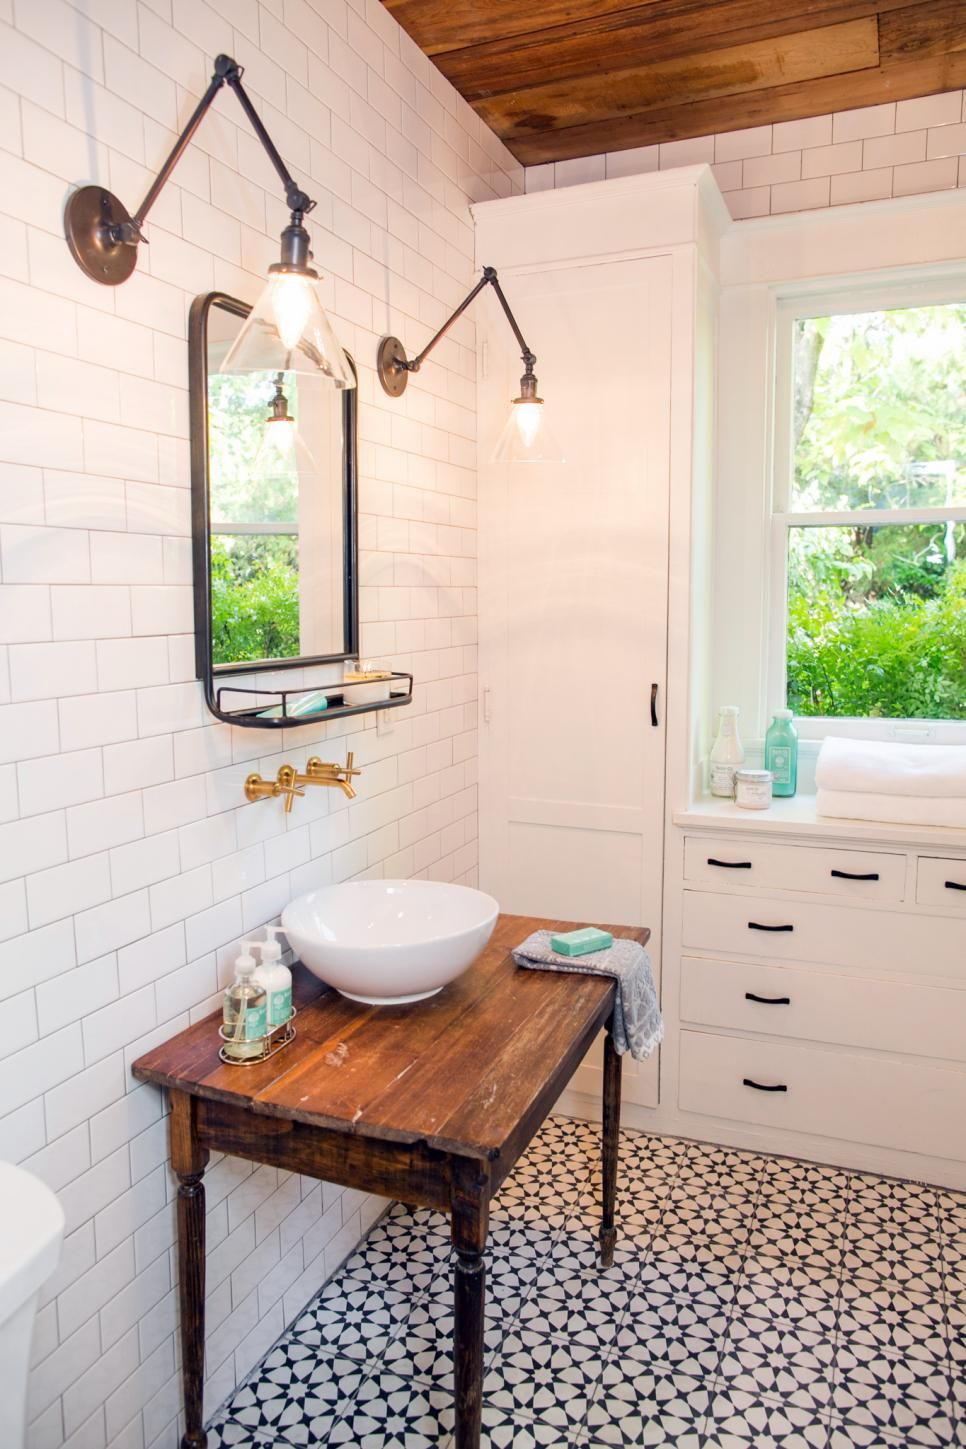 Fixer upper freshening up a 1919 bungalow for empty - Joanna gaines bathroom renovations ...